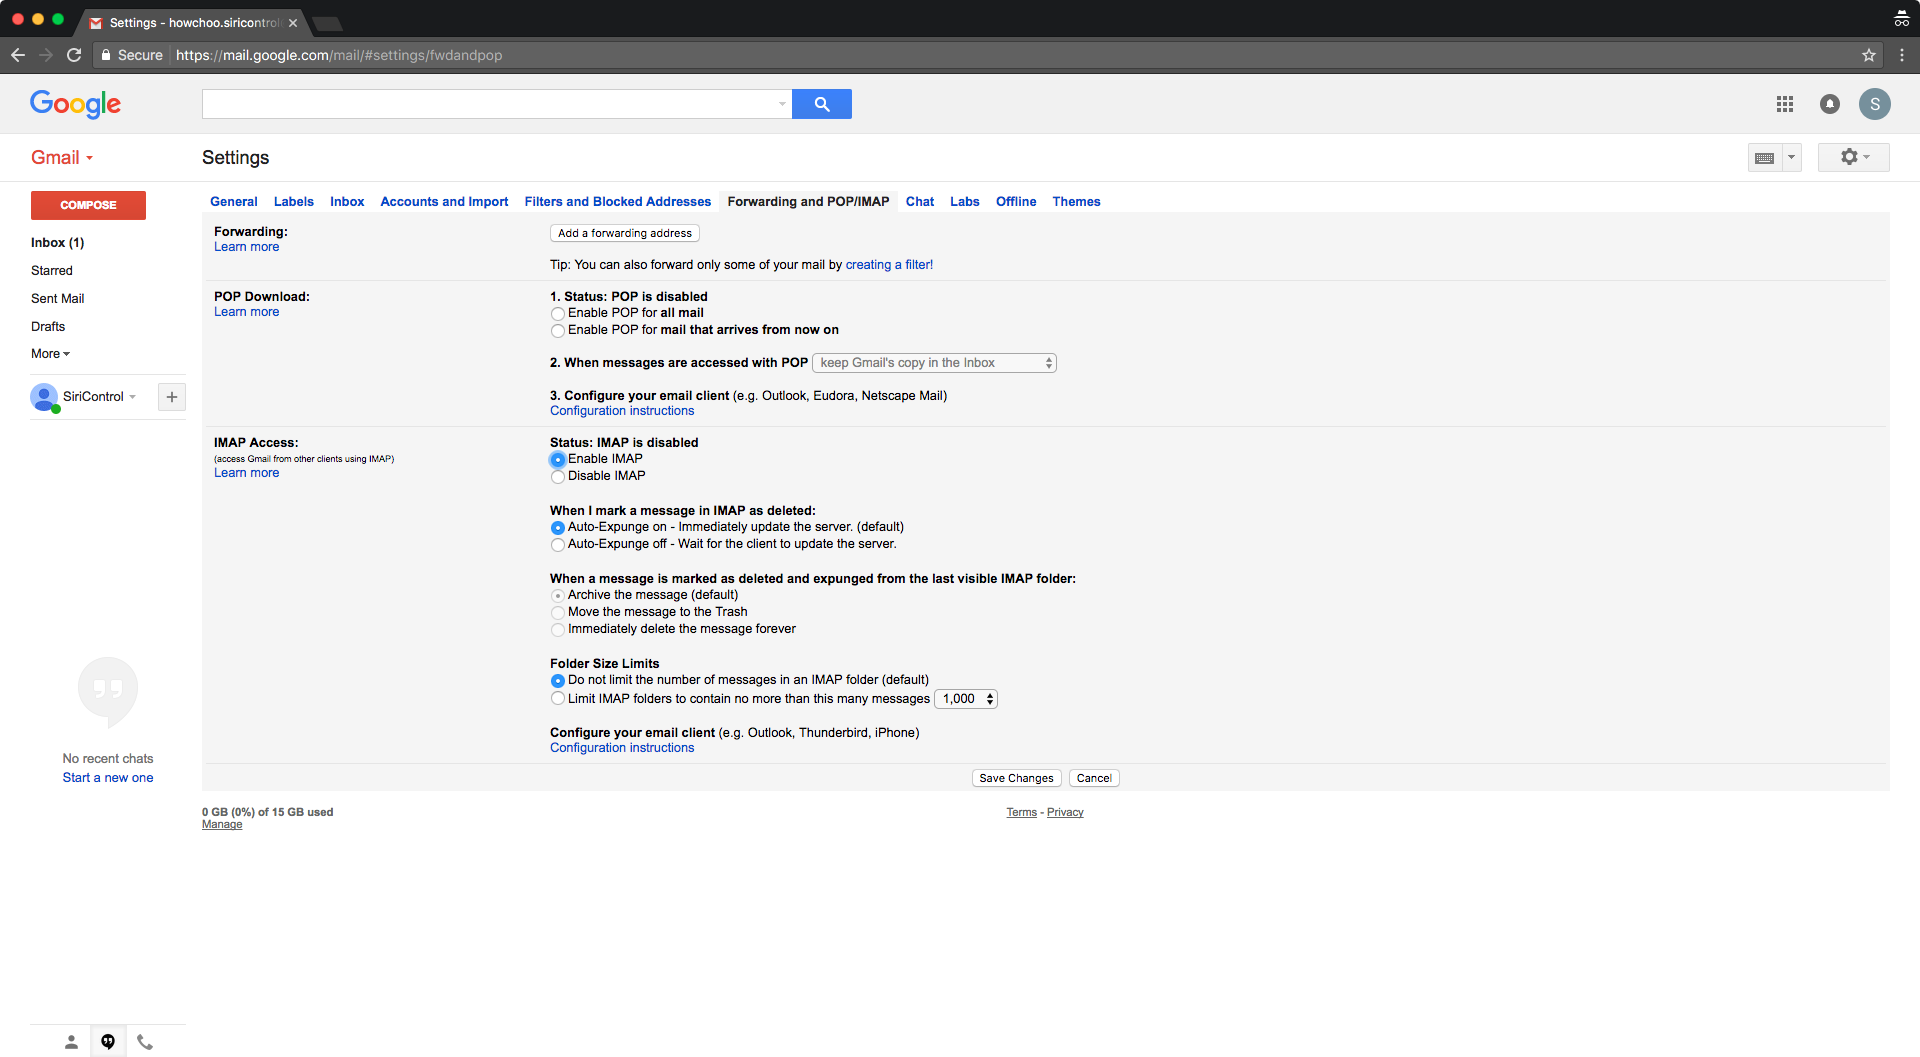 Gmail theme disabled - How To Use Siri To Control Anything From Iftt To Custom Programs And Devices Howchoo